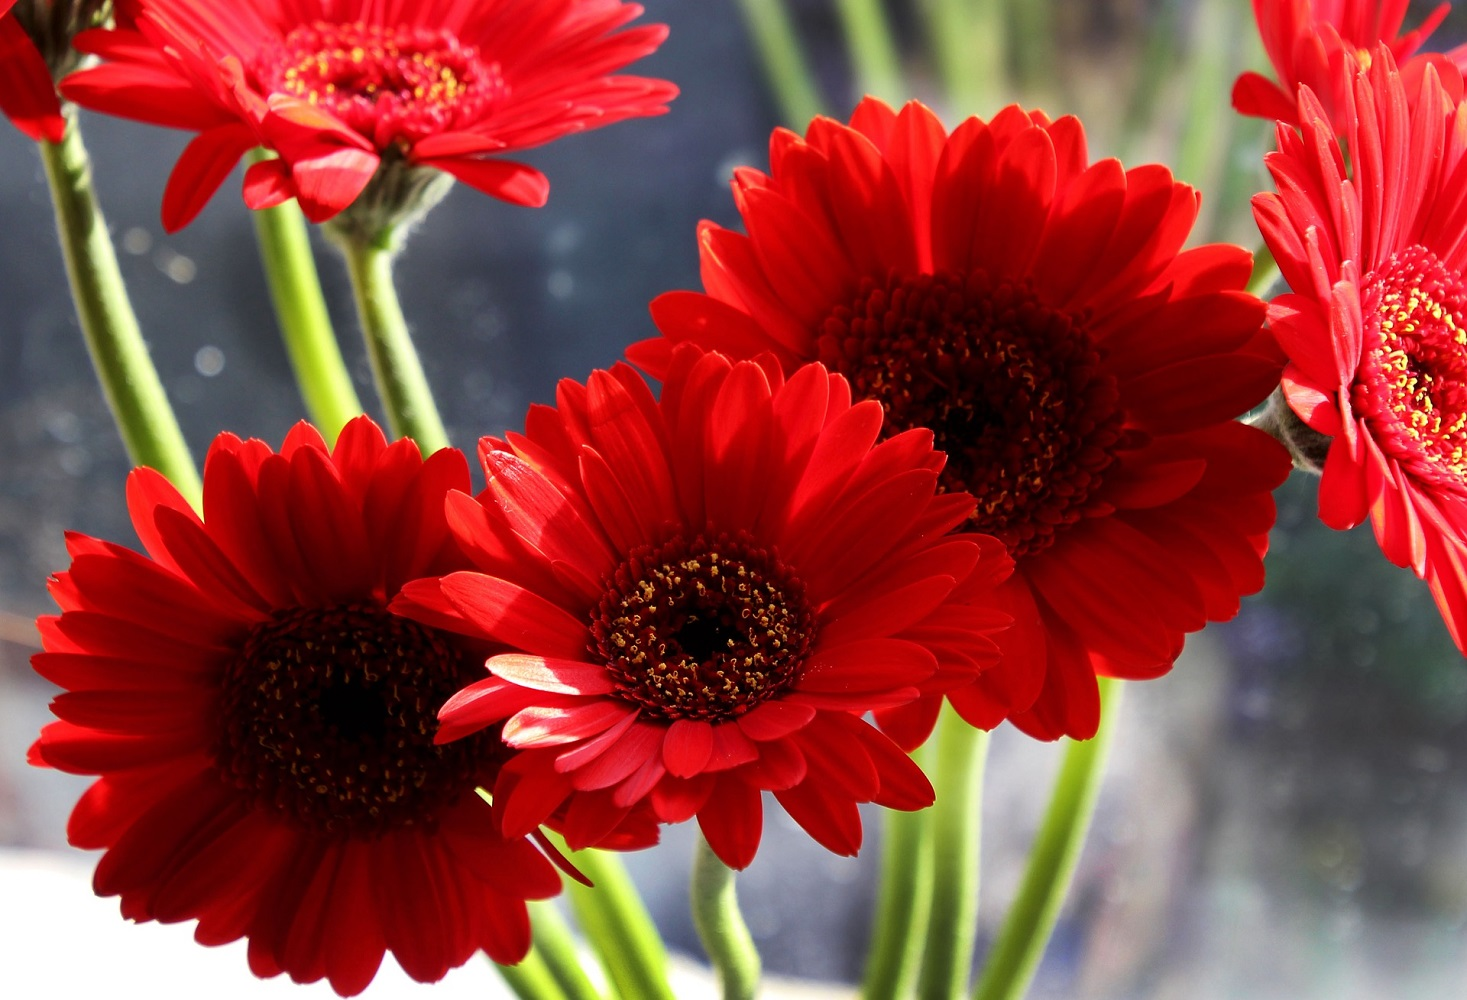 Red Gerbera Daisies absorb pollution